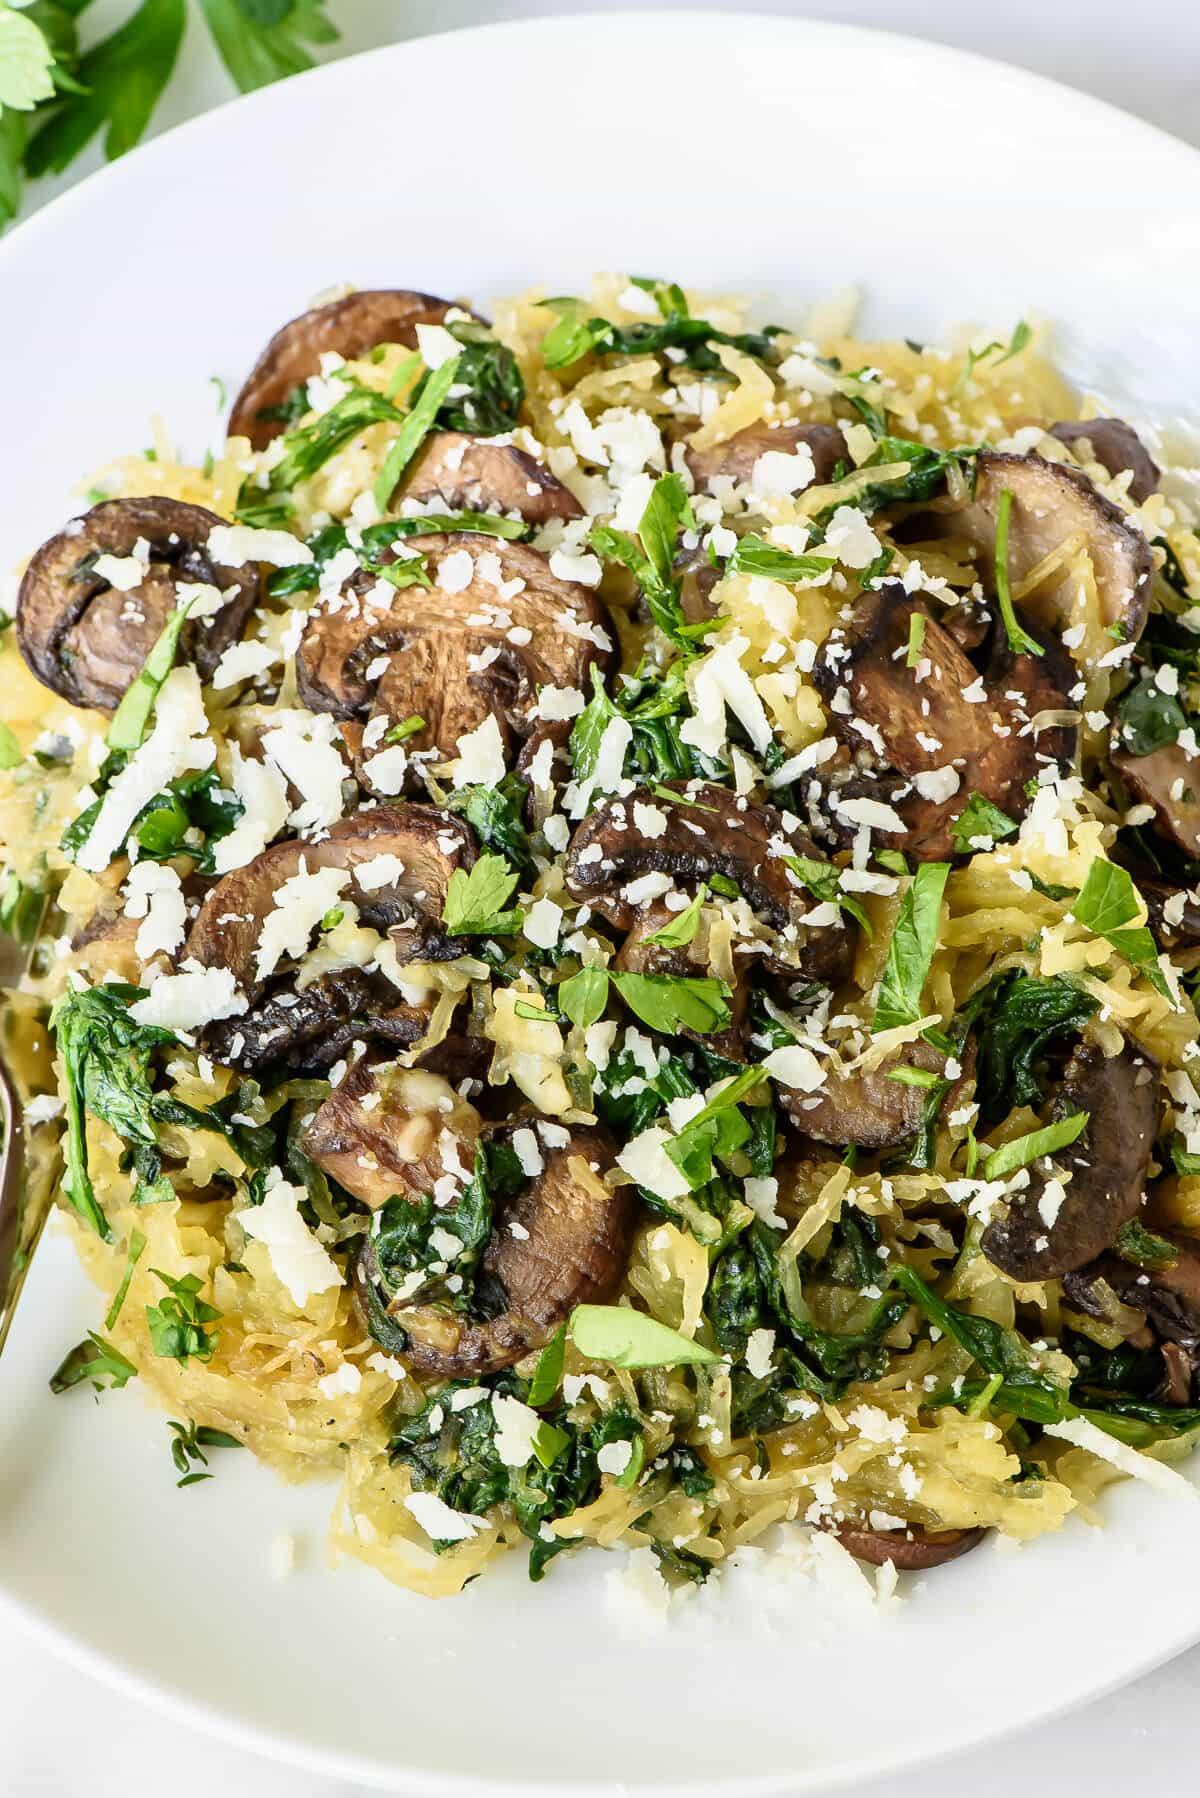 Garlic Roasted Spaghetti Squash with Parmesan and Mushrooms. An easy, healthy vegetarian dinner recipe. Healthy and gluten free!